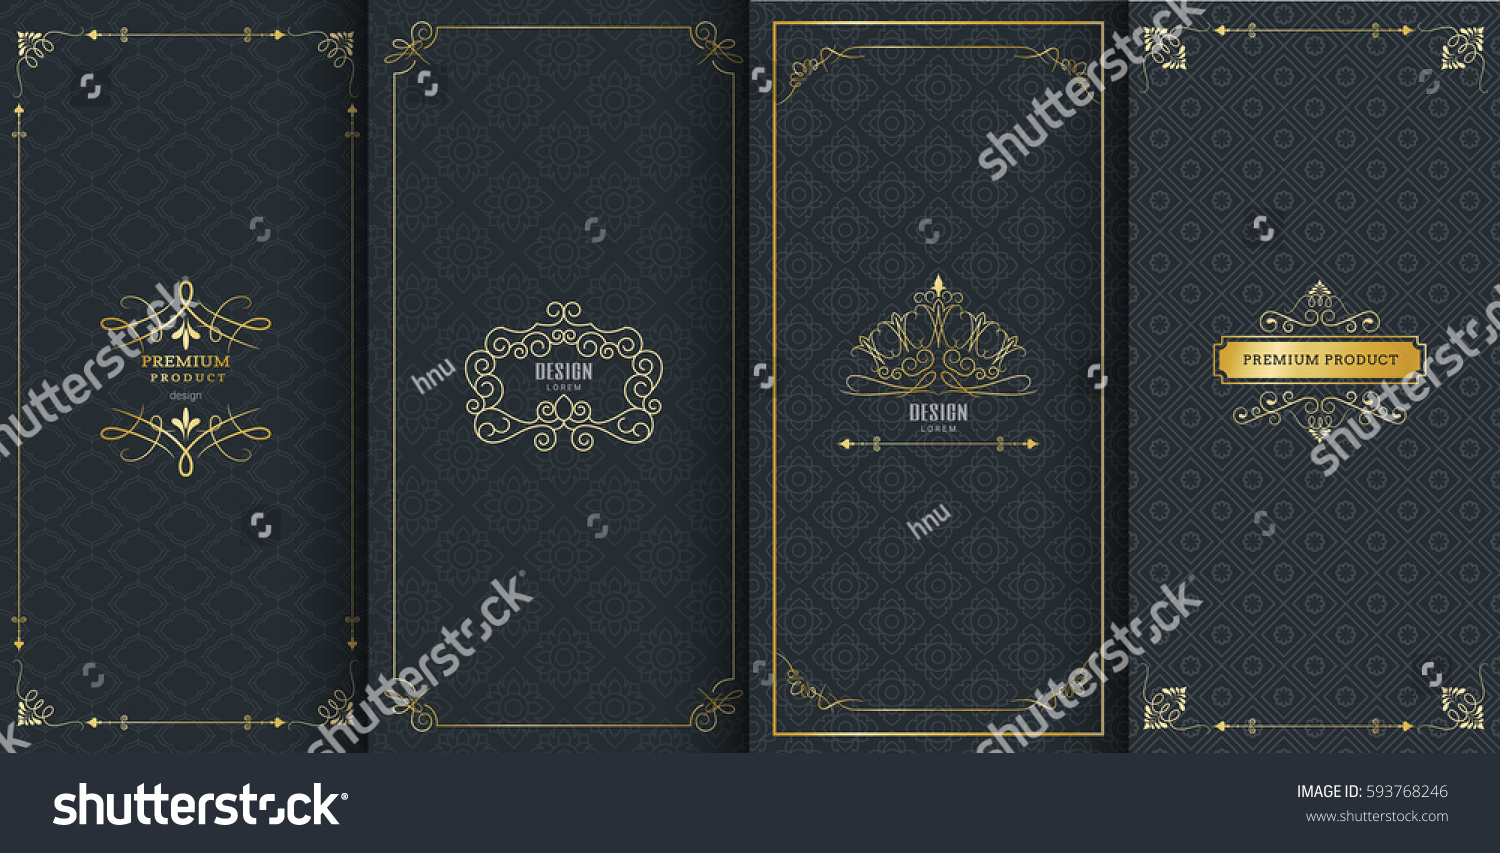 Collection of design elements, labels,icon and frames for packaging and design of luxury products.Made with golden foil Isolated on black background. vector illustration